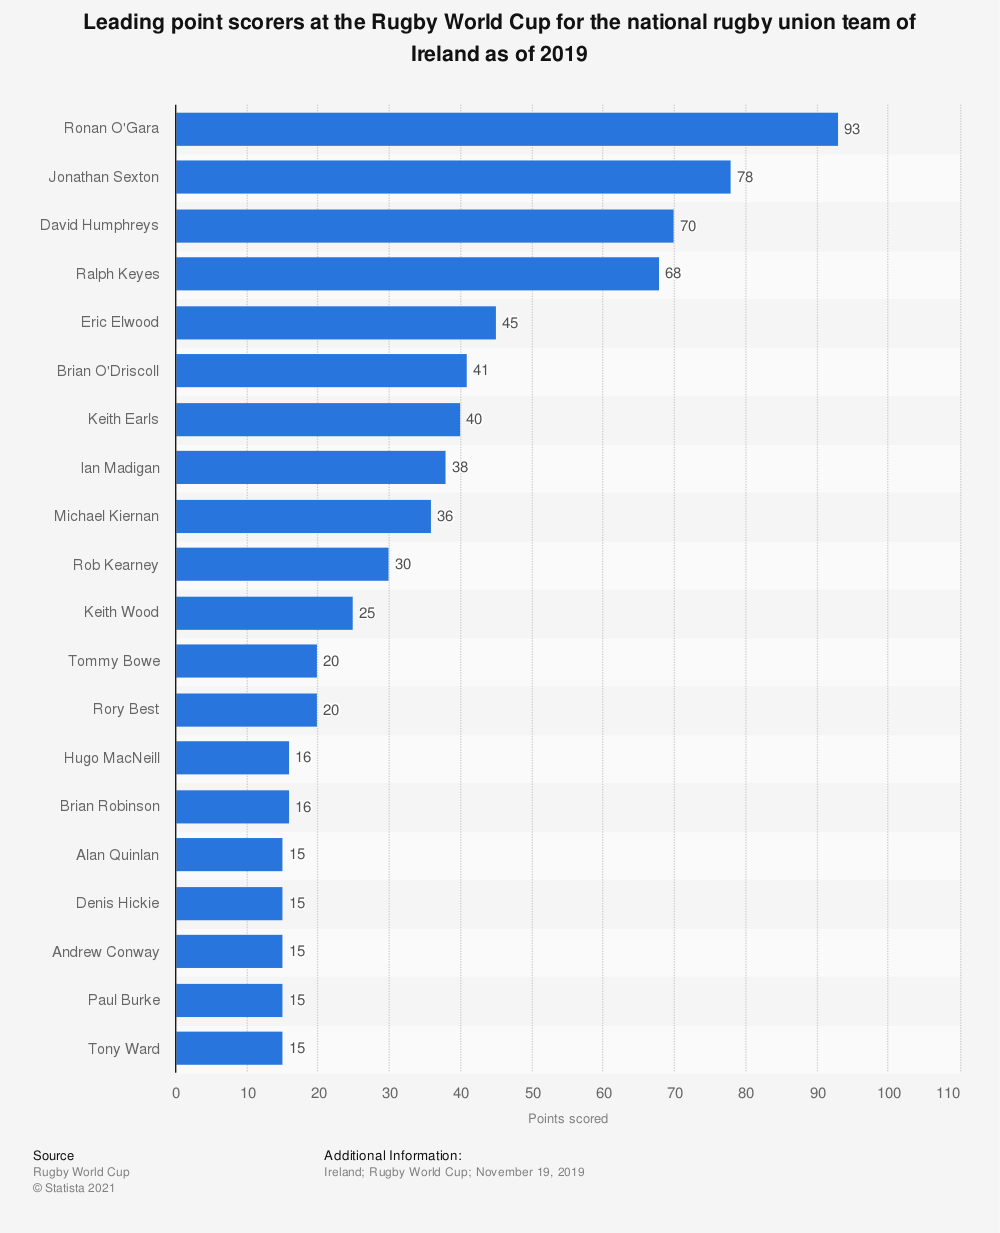 Statistic: Leading point scorers at the Rugby World Cup for the national rugby union team of Ireland as of 2019 | Statista